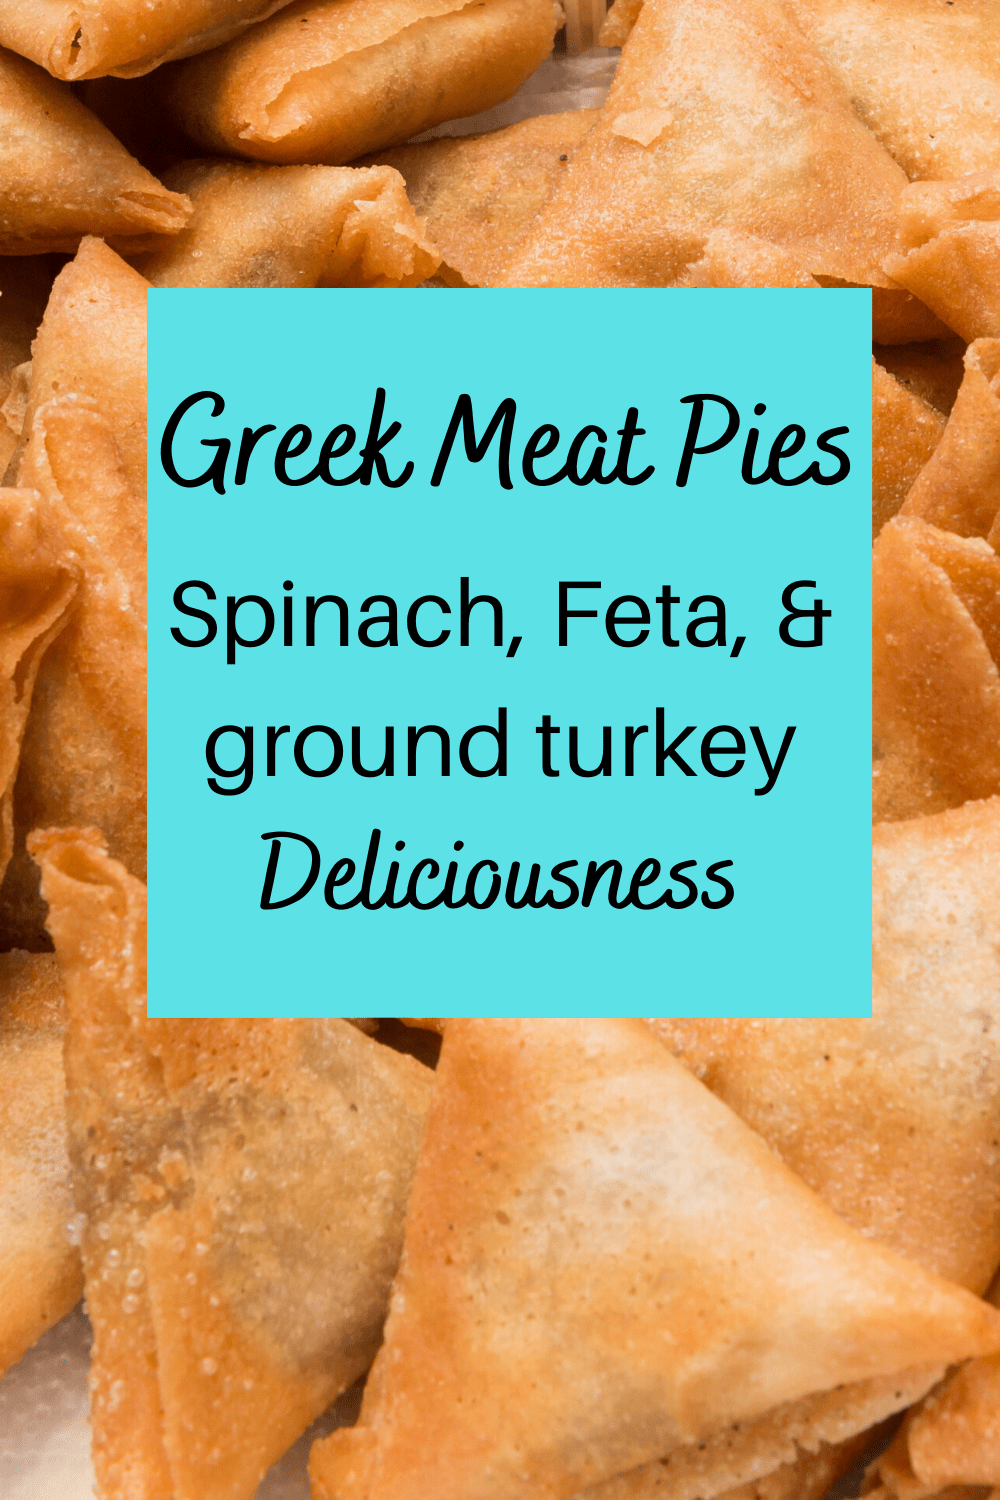 Pin with a plate of Greek pies.